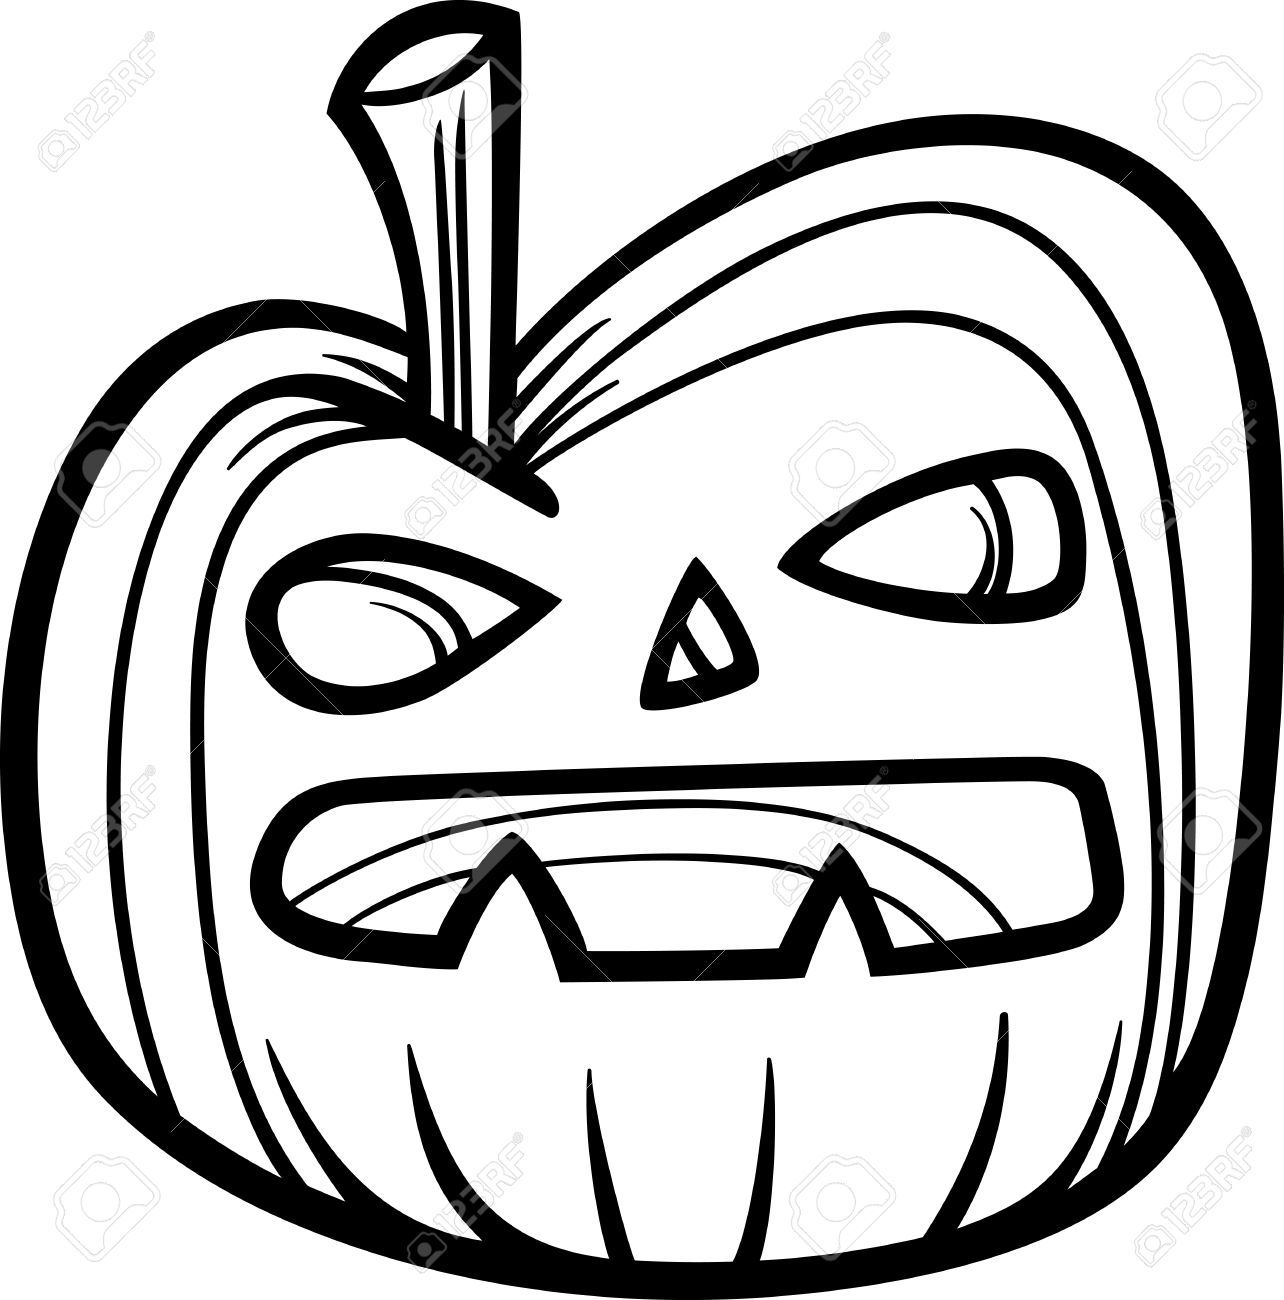 Pumpkin Cartoon Drawing At Getdrawings